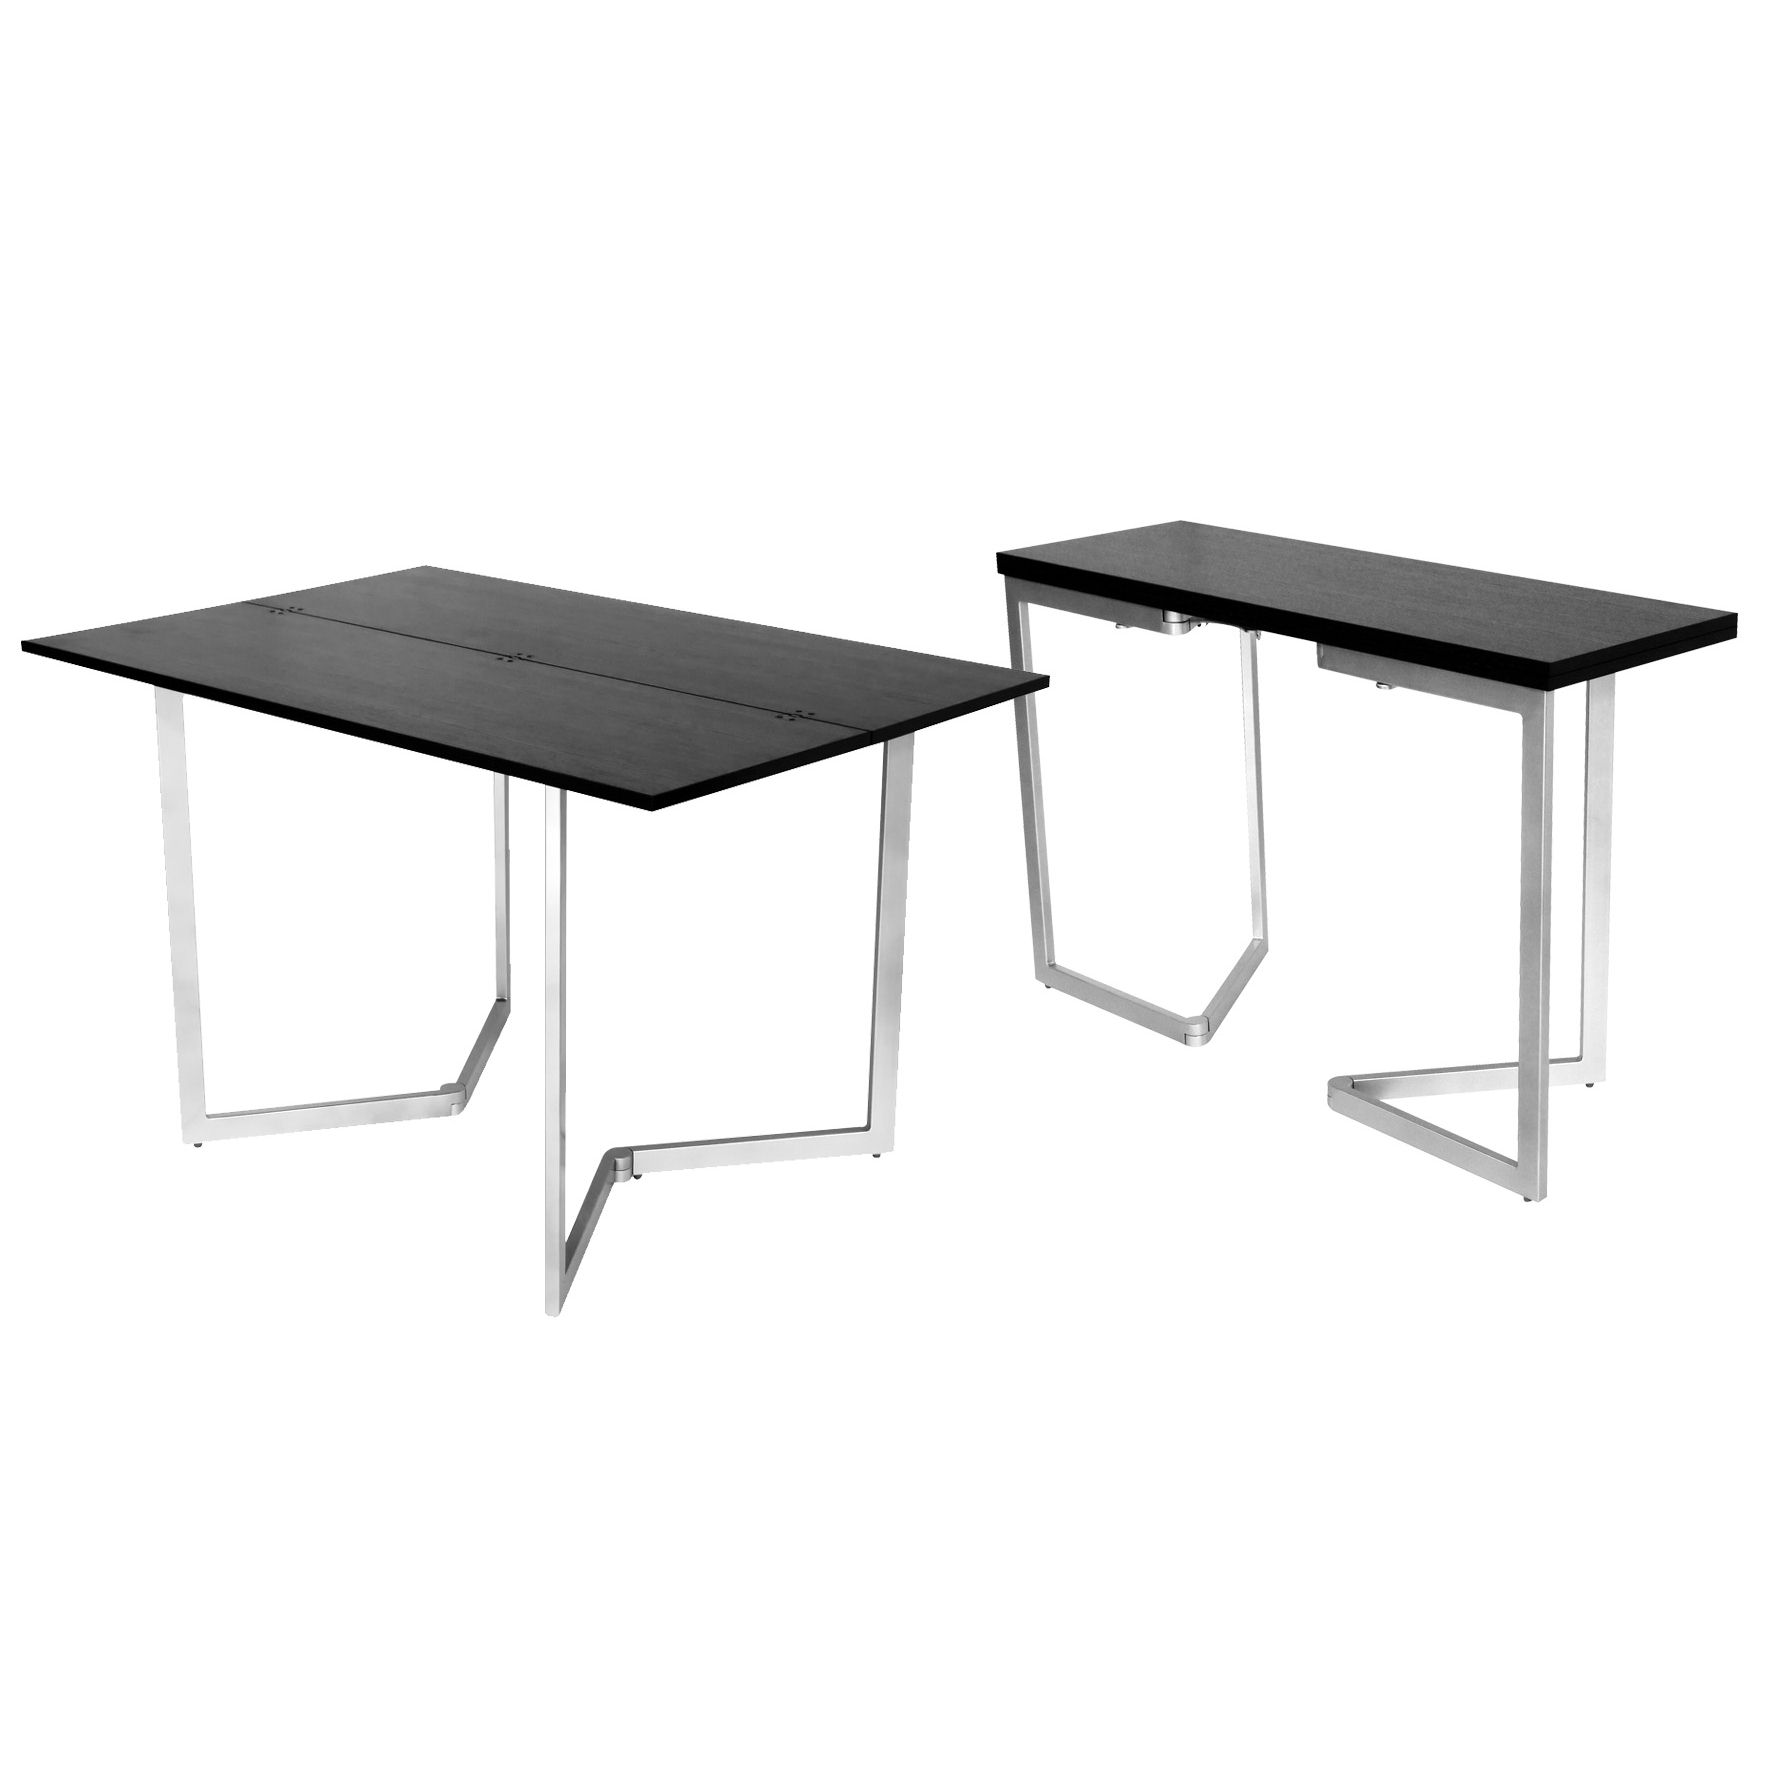 Deco in paris table console extensible wenge talia console talia wenge god - Table extensible rallonges integrees ...